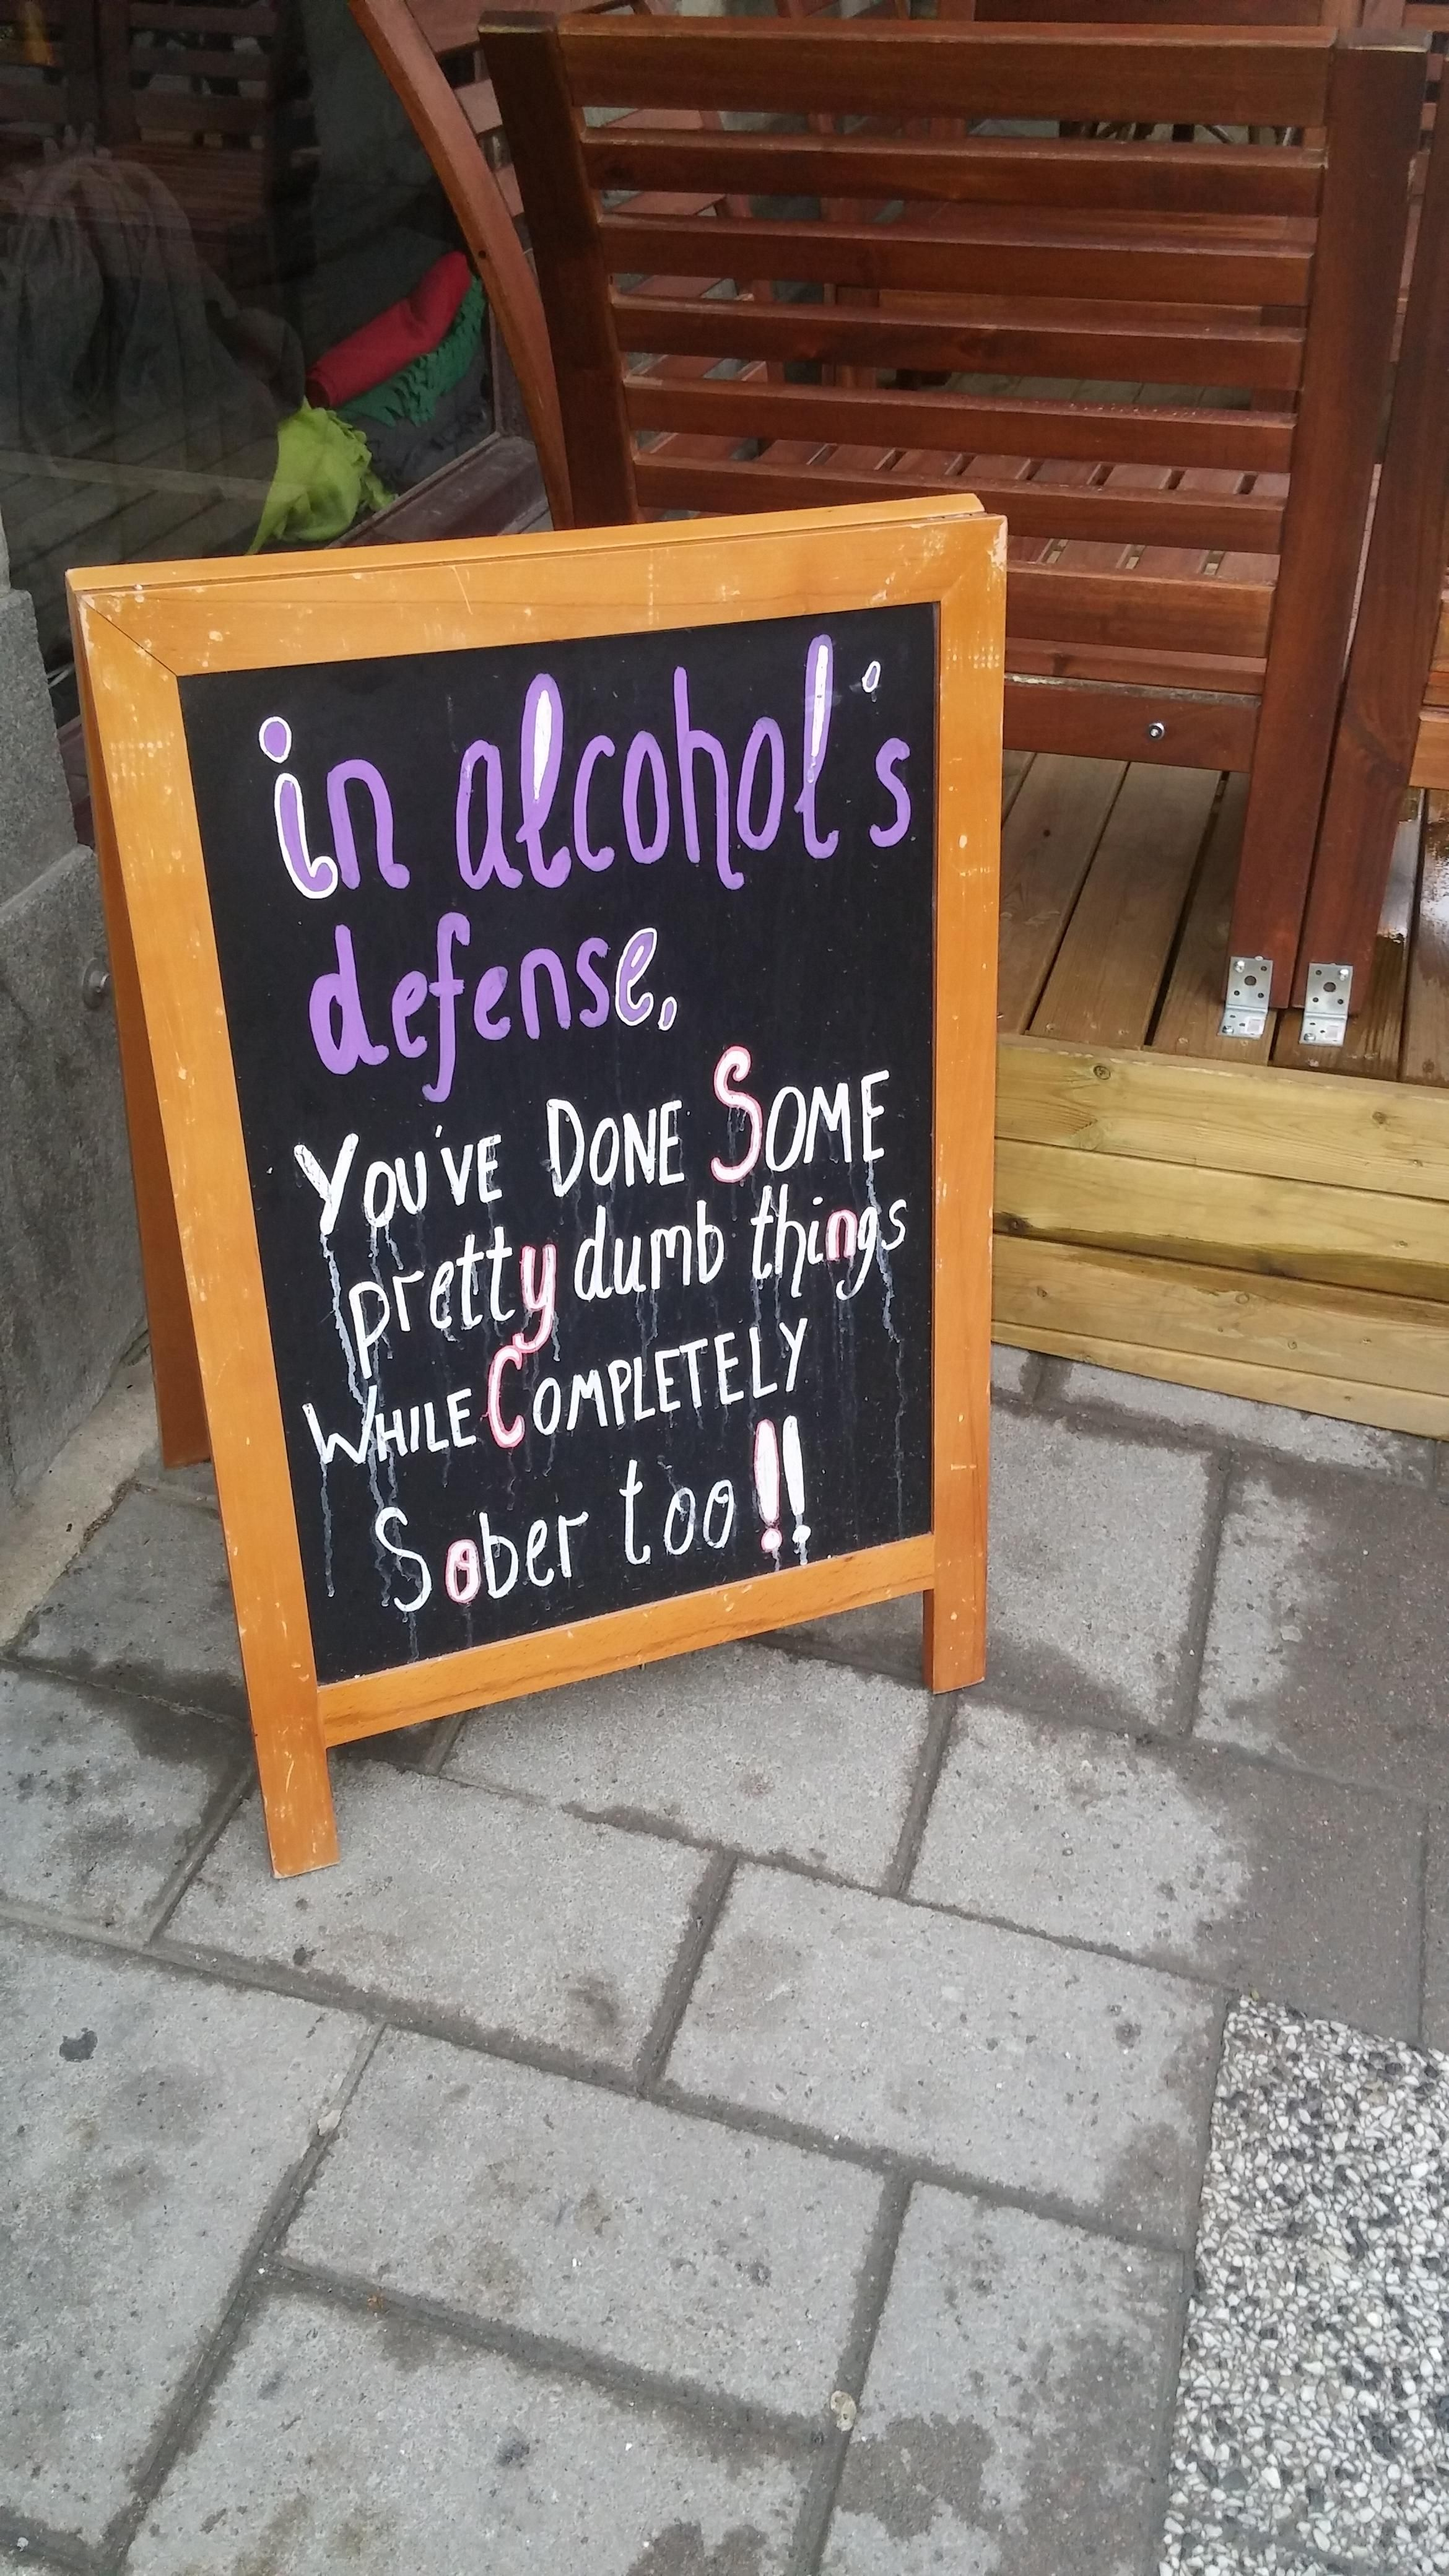 In alcohol's defense.